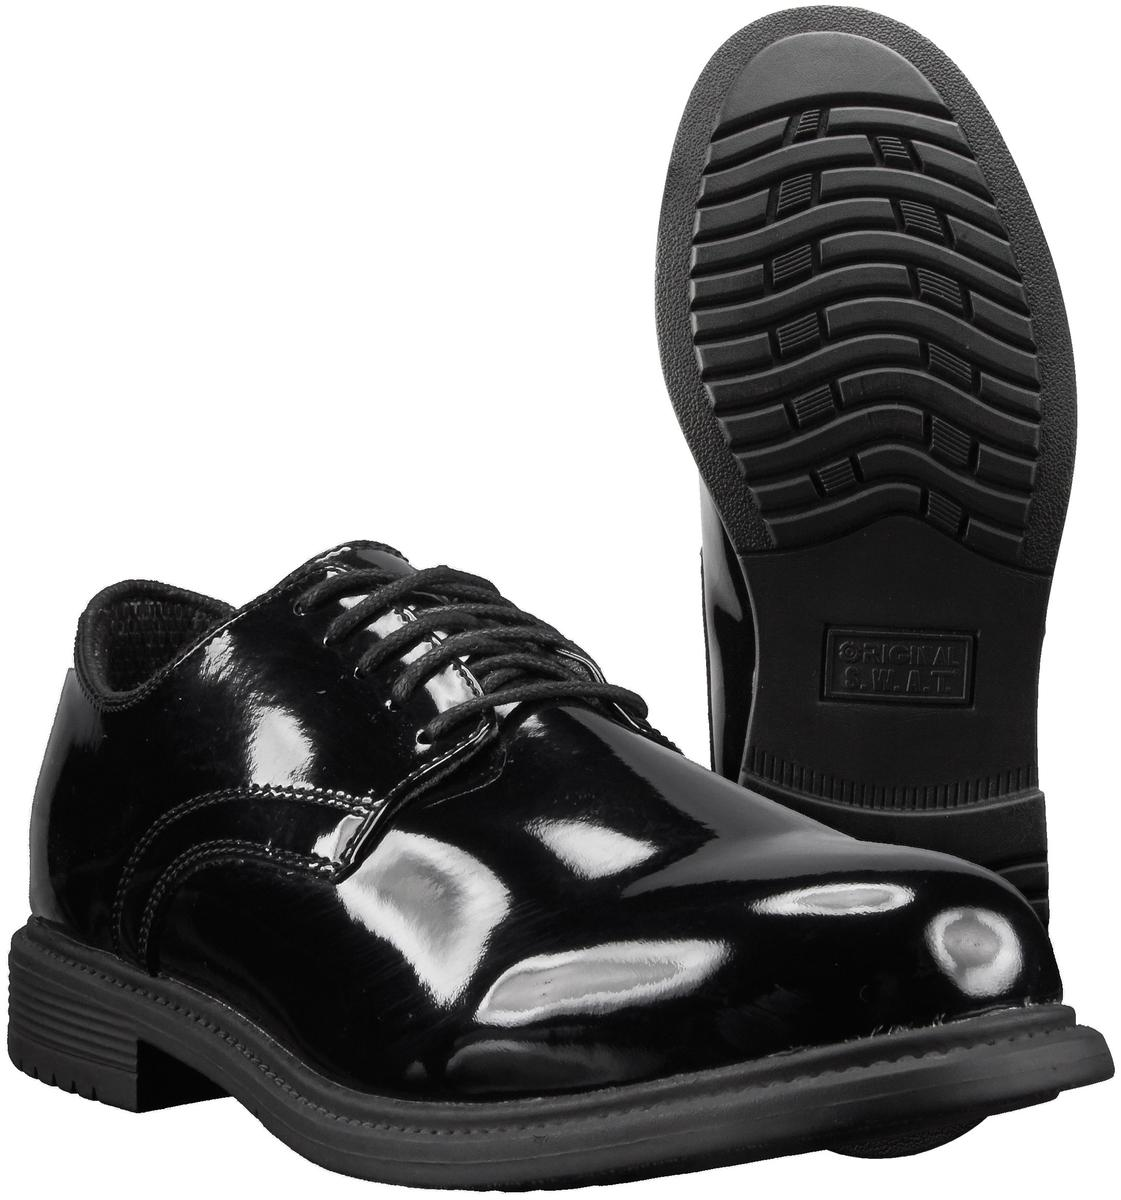 Original SWAT 118001 Men's Dress Oxford, Uniform Shoe, Black